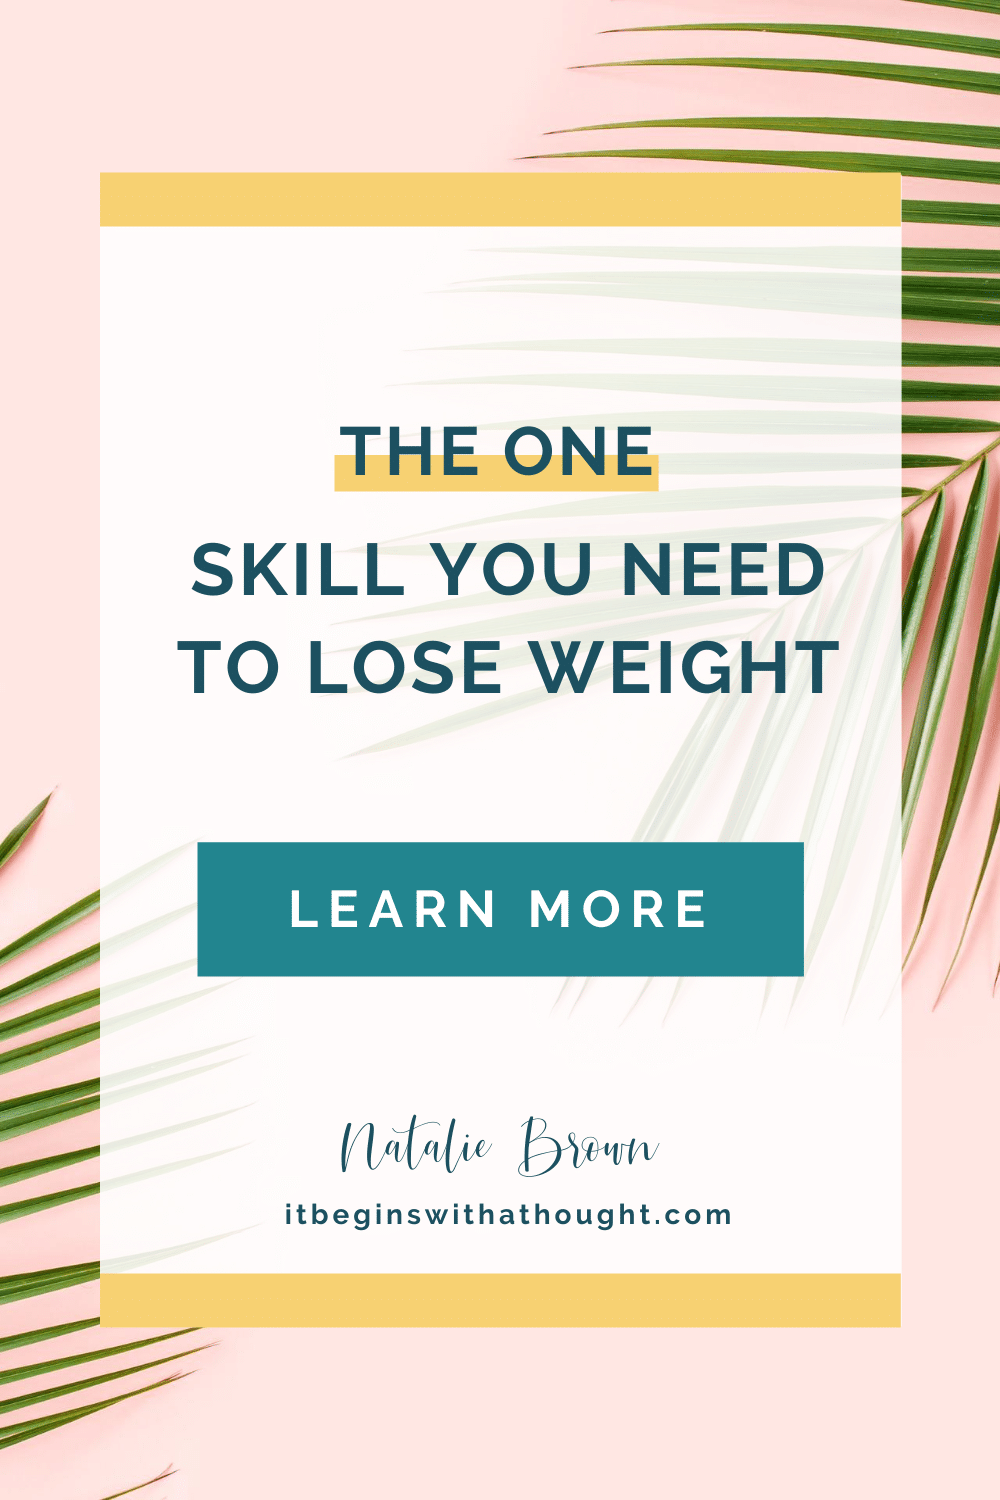 The 1 skill you need to lose weight